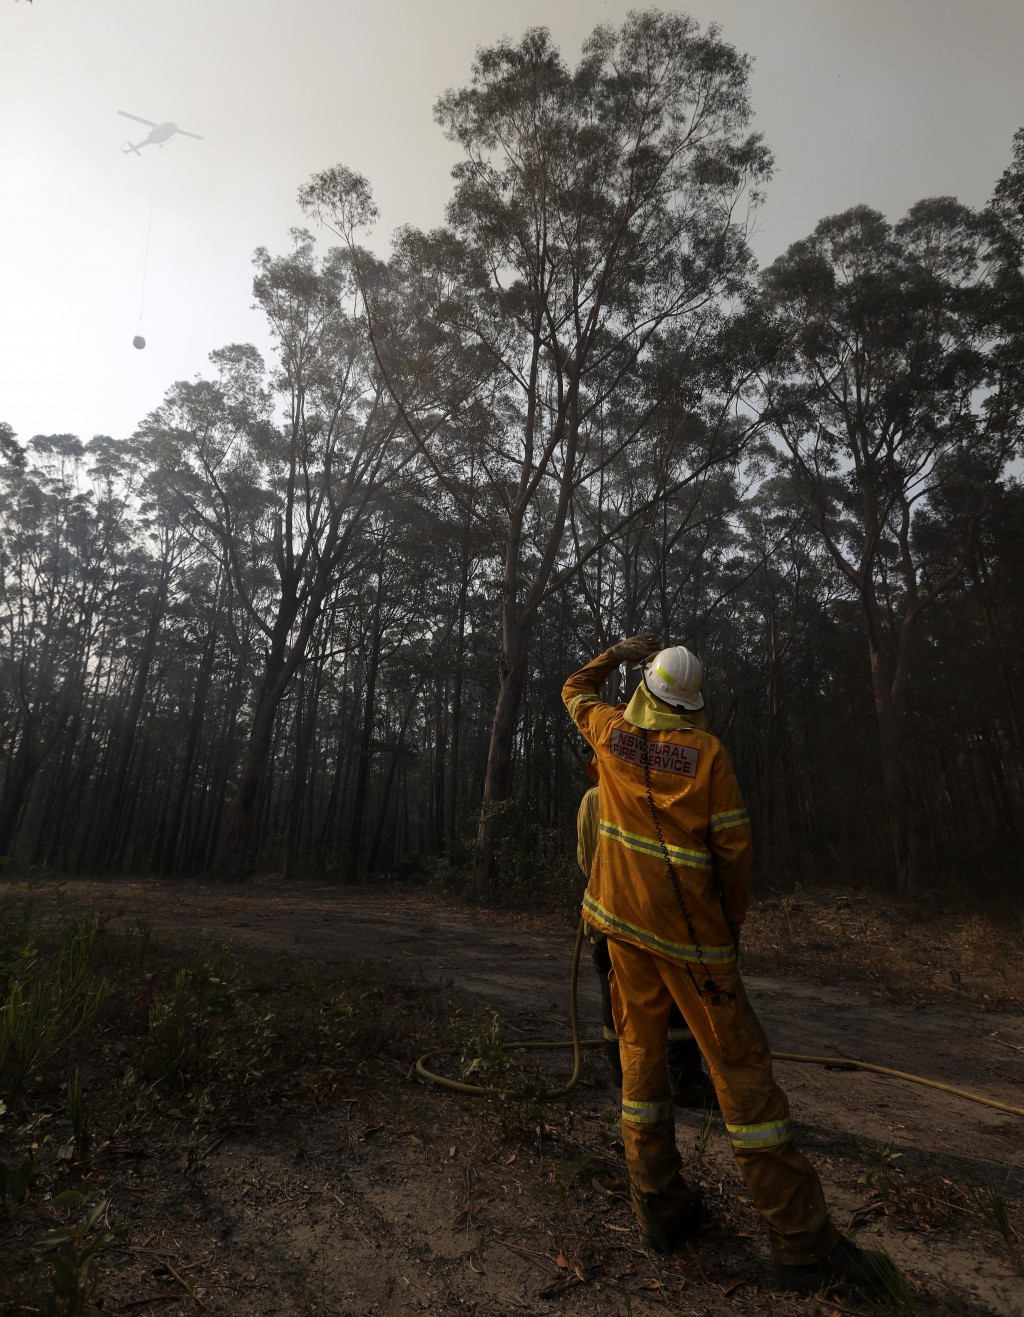 A firefighter watches a water bombing helicopter approach as they battle a fire near Bendalong, Australia, Friday, Jan. 3, 2020. Navy ships plucked hu...